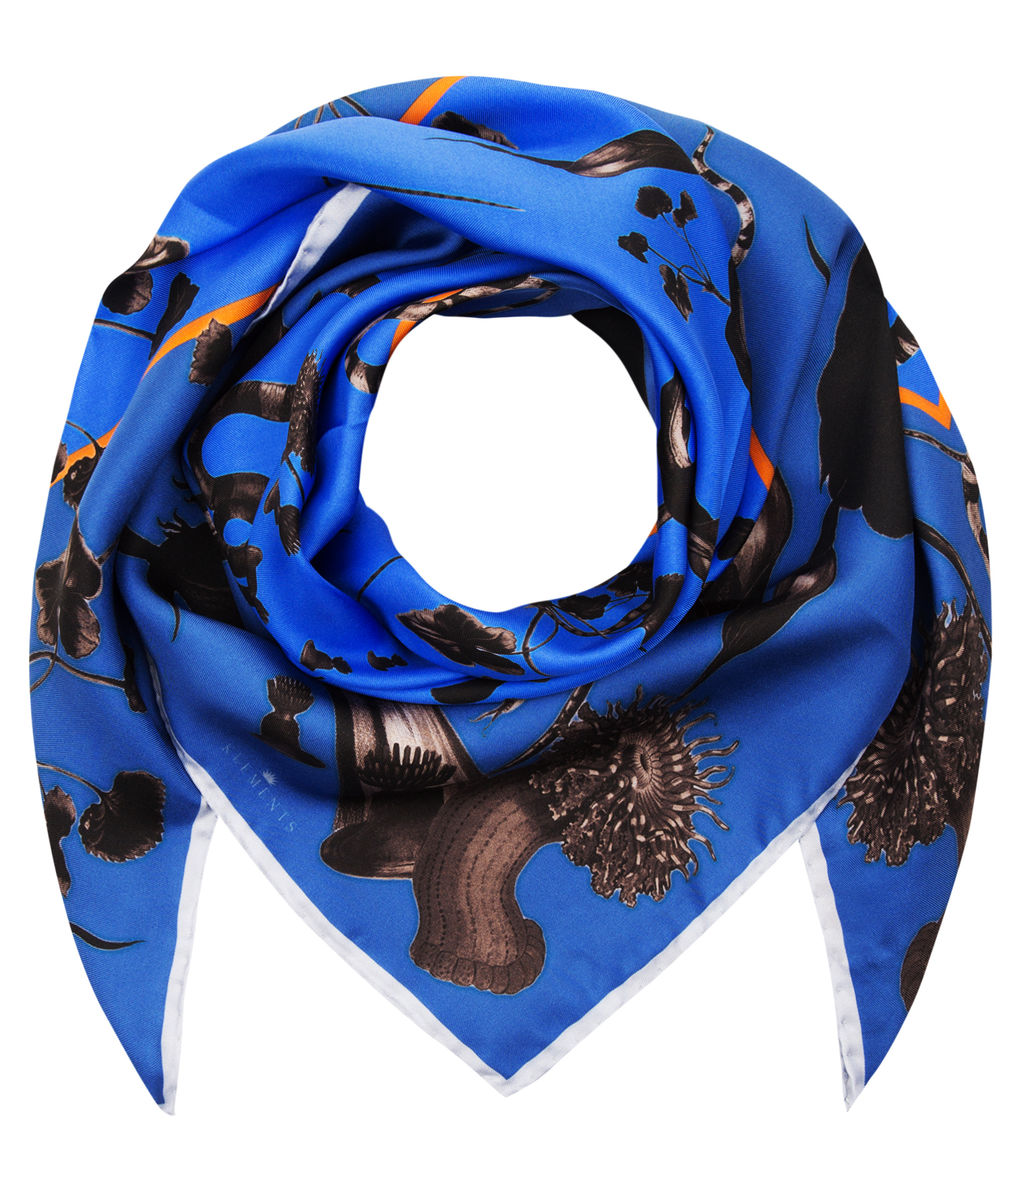 Medium scarf in Rainbow Trout Print (blue) - product images  of